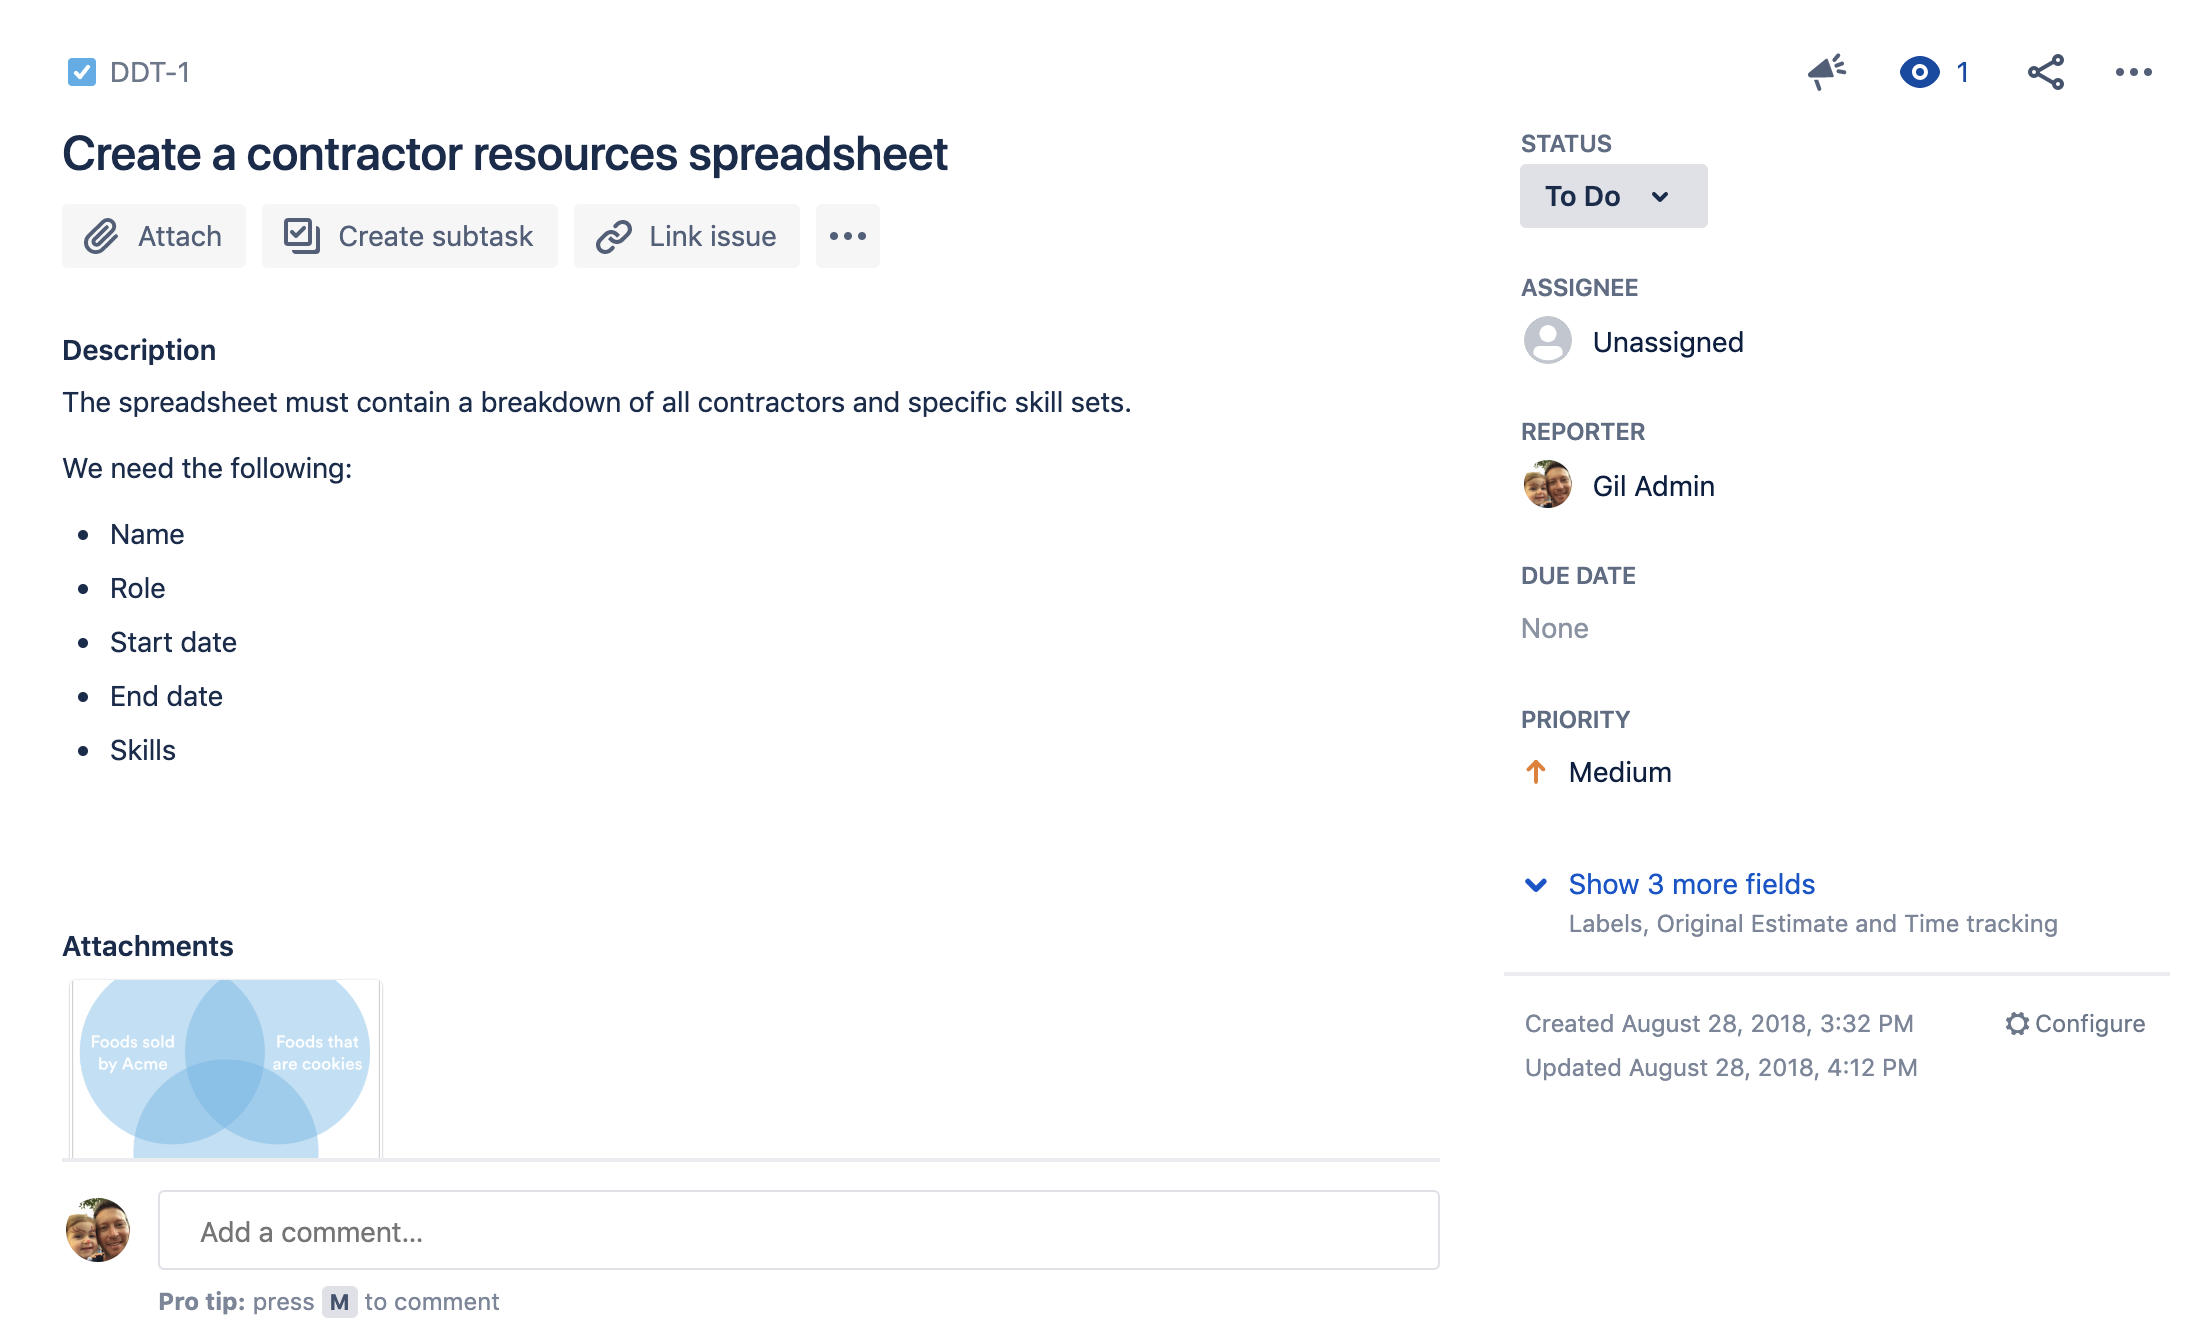 Jira task in the to do status to create a contractor resources spreadsheet.